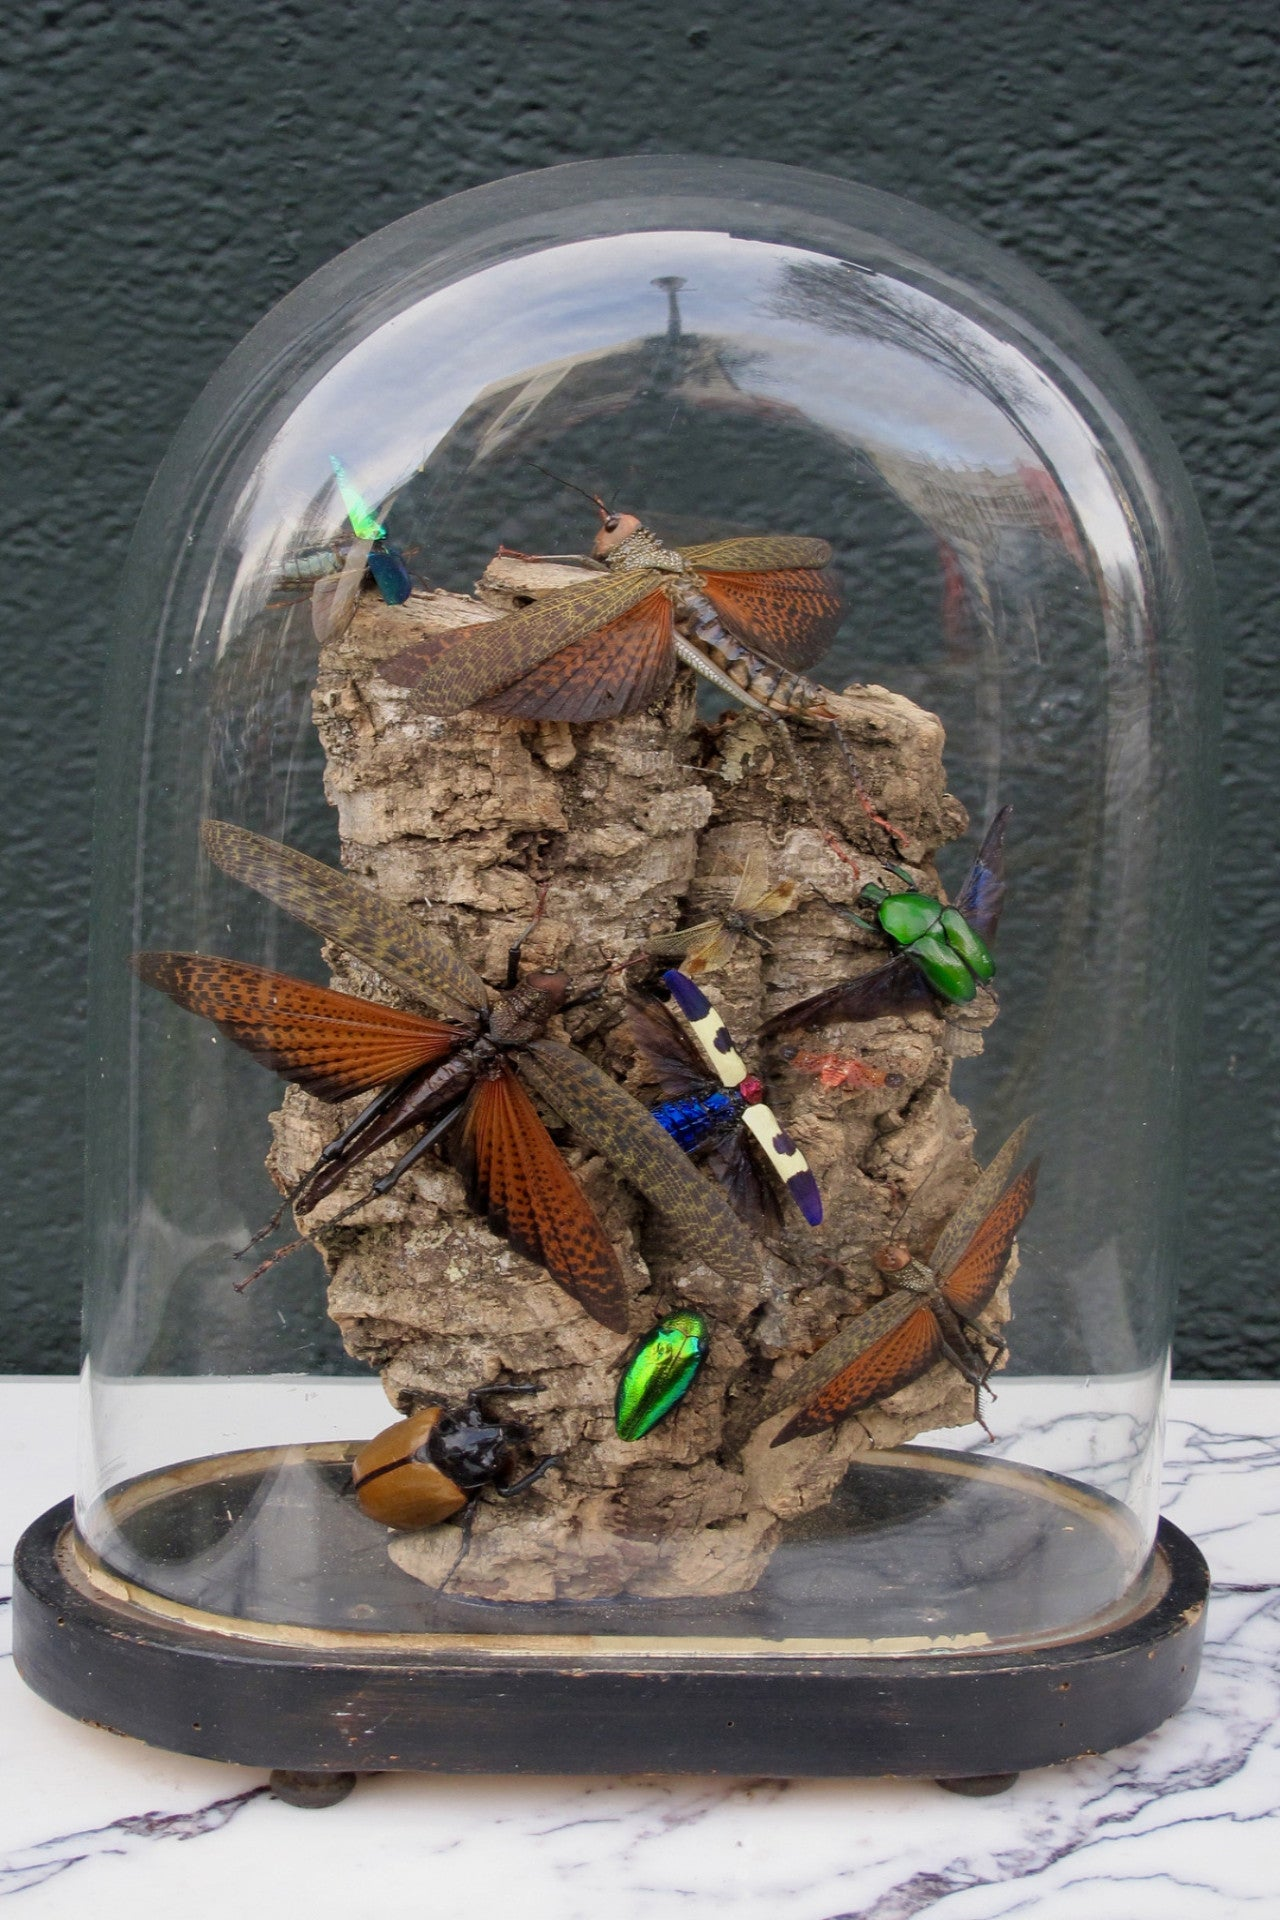 X Diorama of jewel beetles set in a victorian glass dome